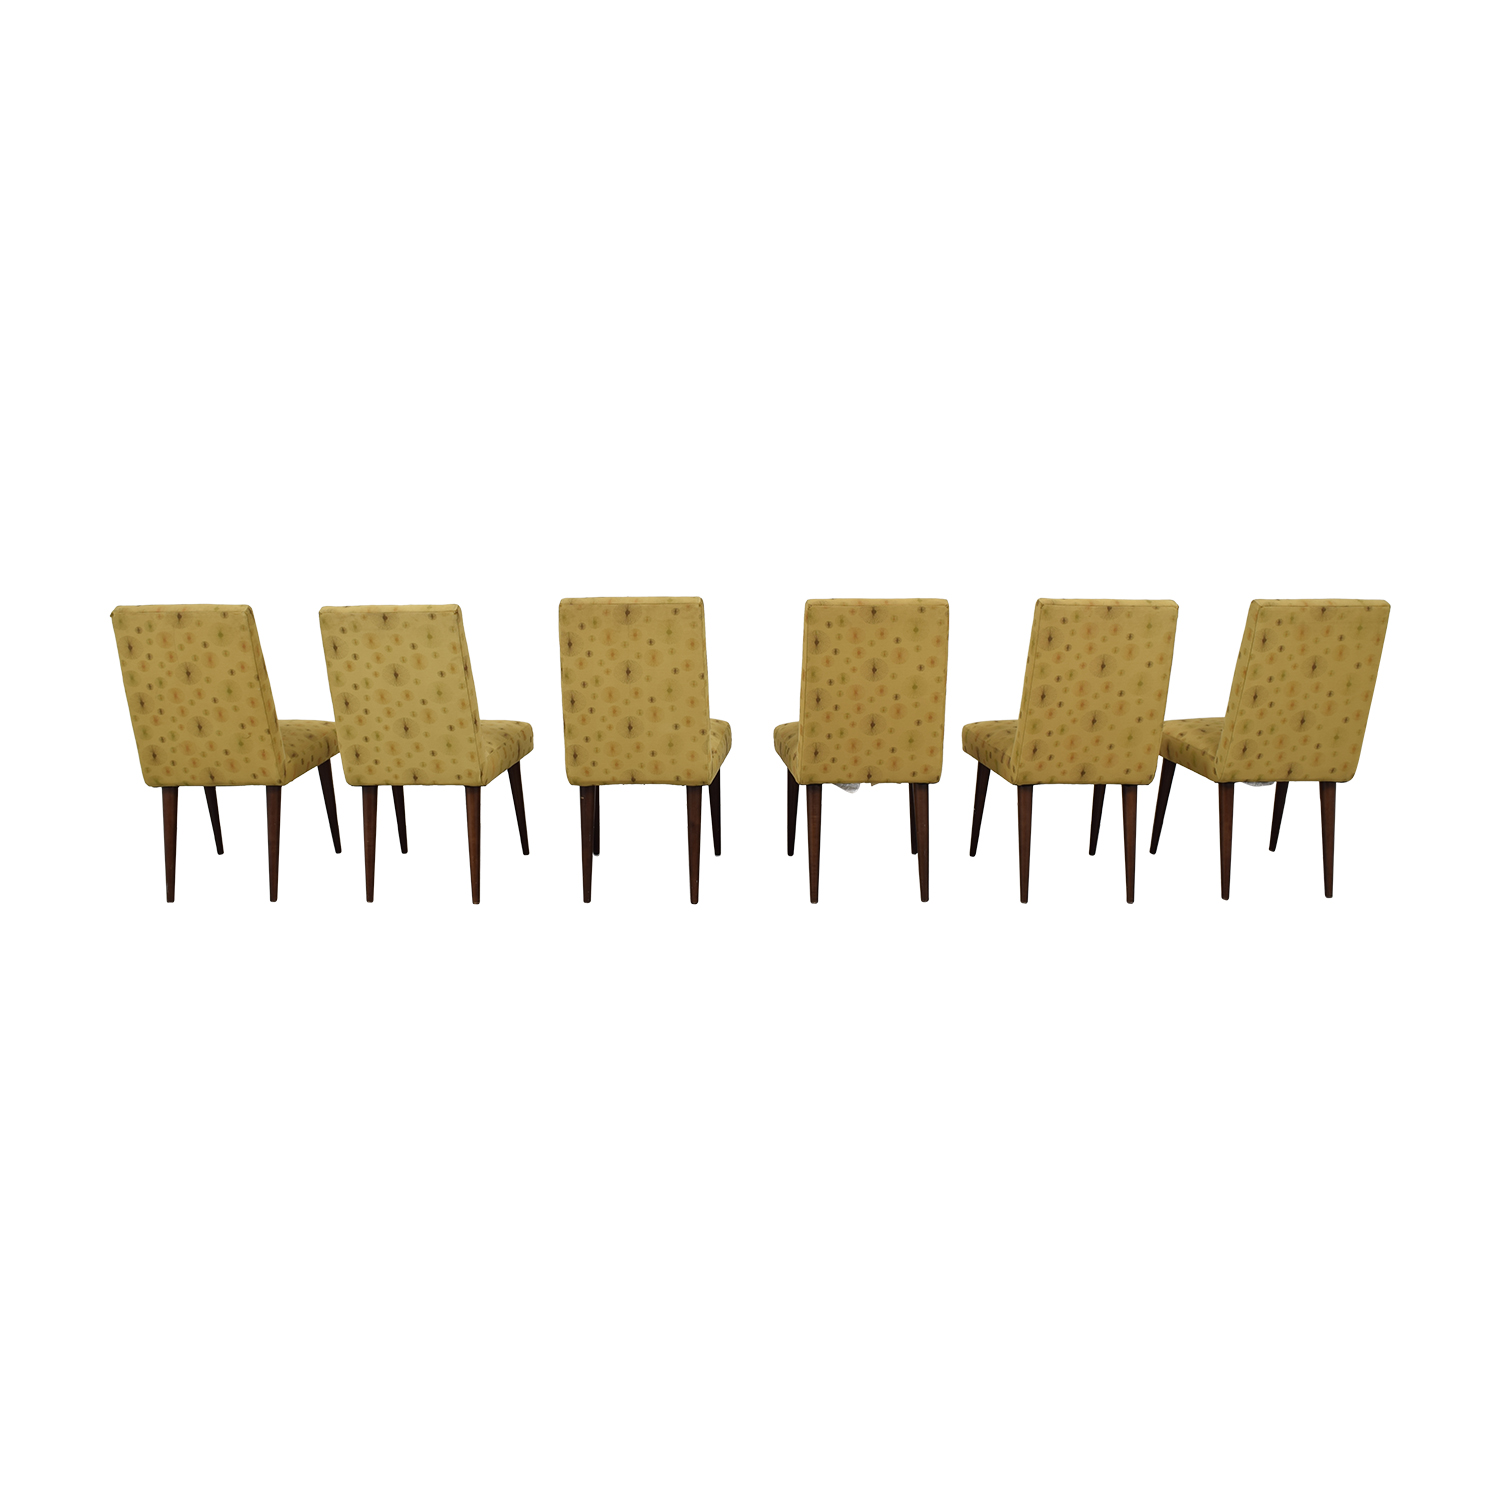 Room & Board Room & Board Multi-Colored Dining Chairs Dining Chairs